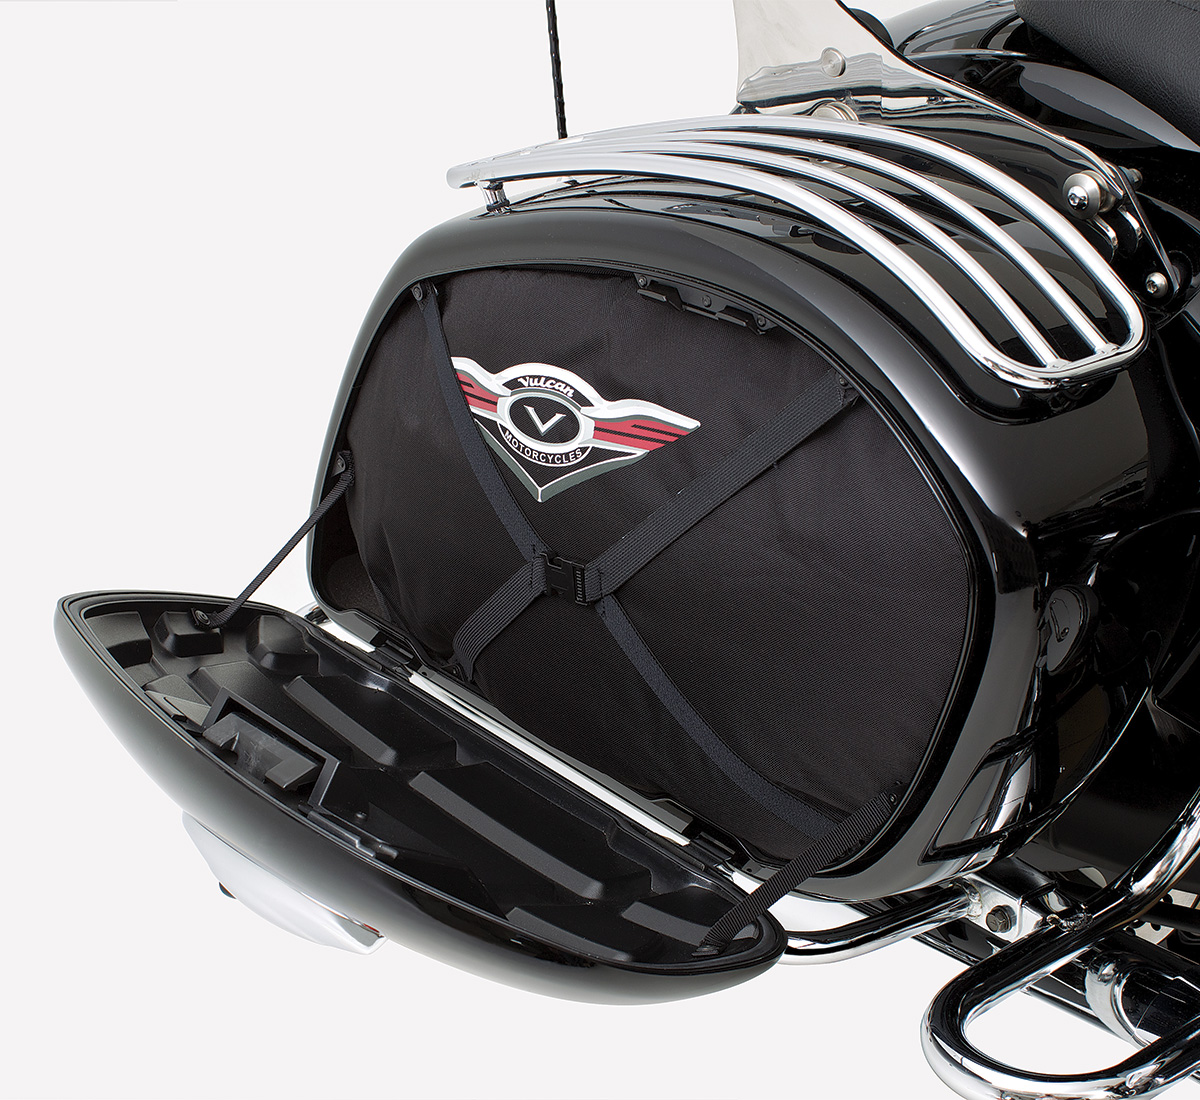 Kawasaki Vaquero Rear Speakers